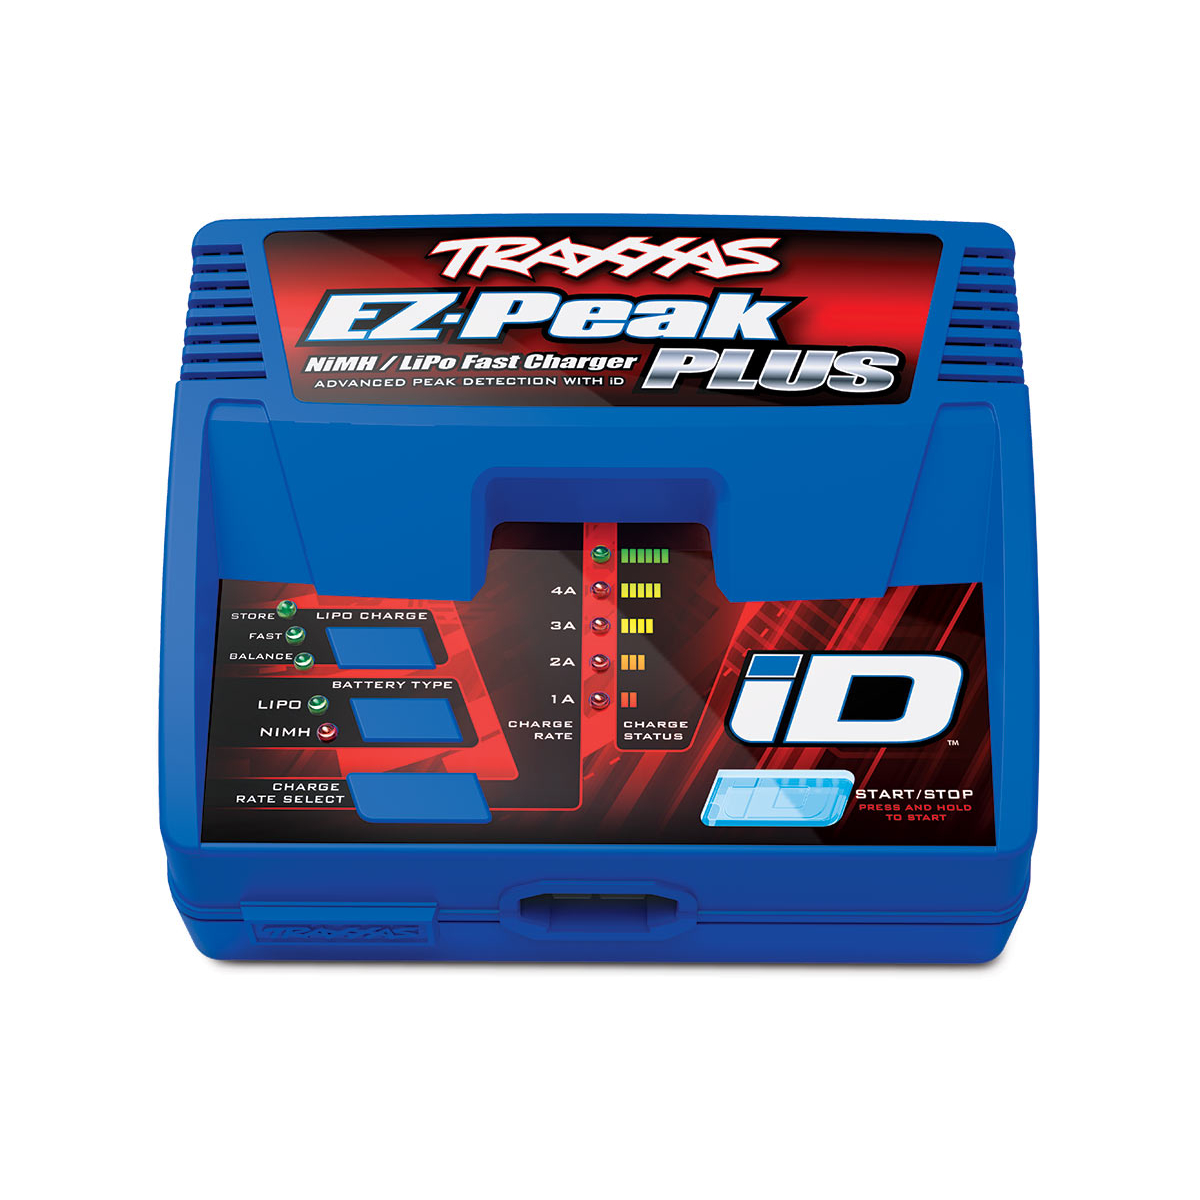 EZ-Peak Plus 4-amp NiMH/LiPo Fast Charger with iD™ Auto Battery Identification